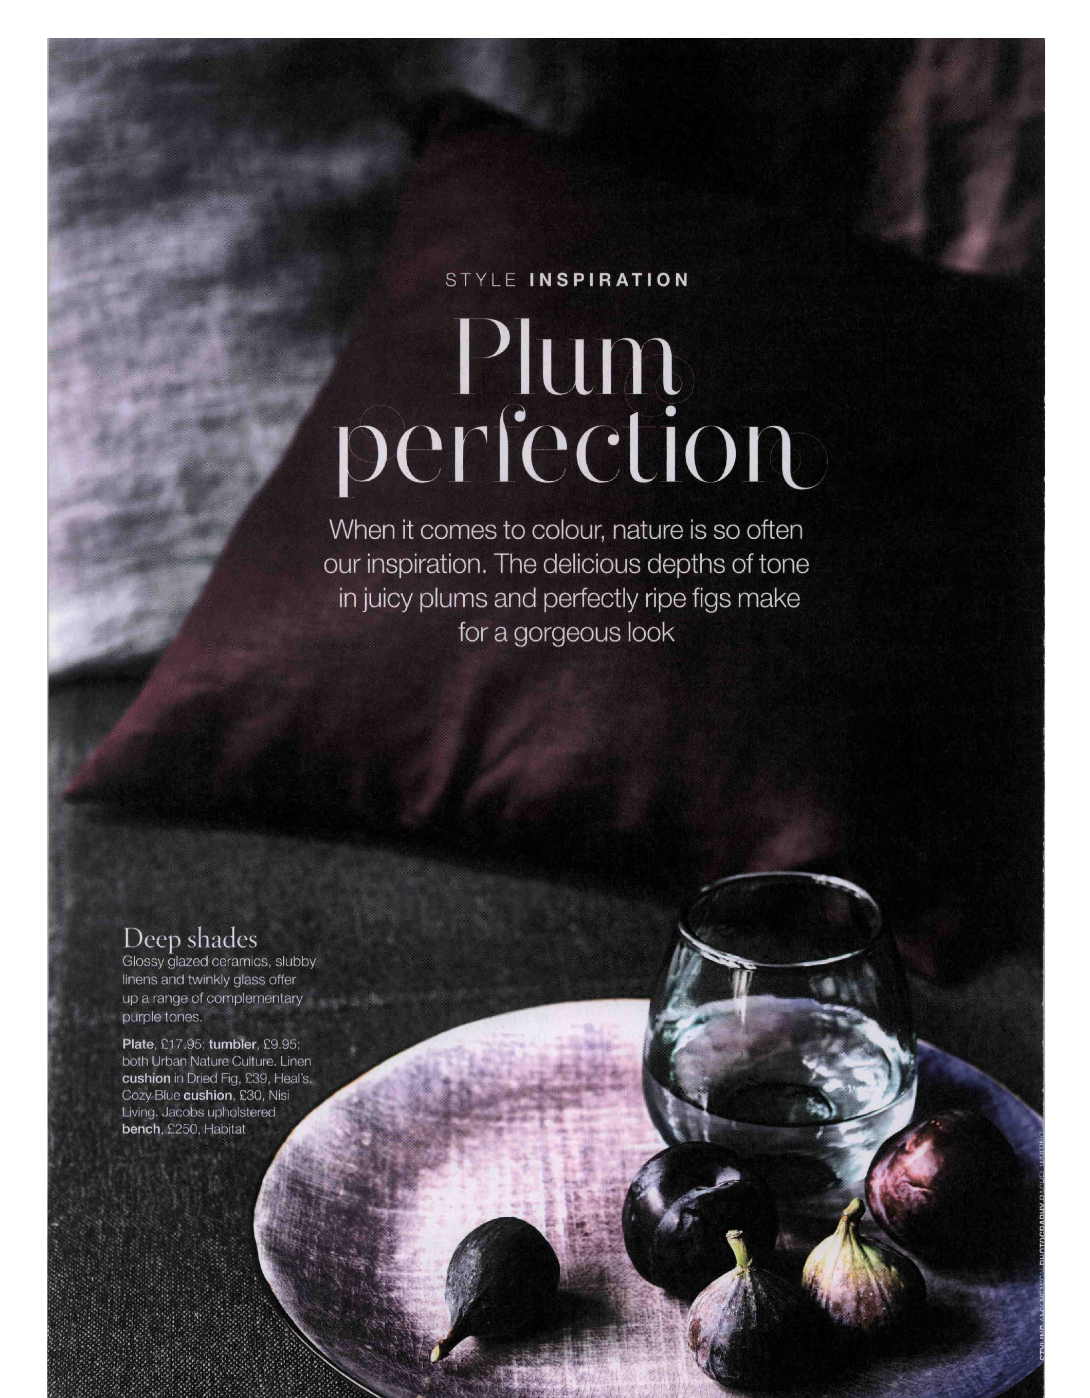 pressarticle-housebeautiful-houseof-plum-perfection-1